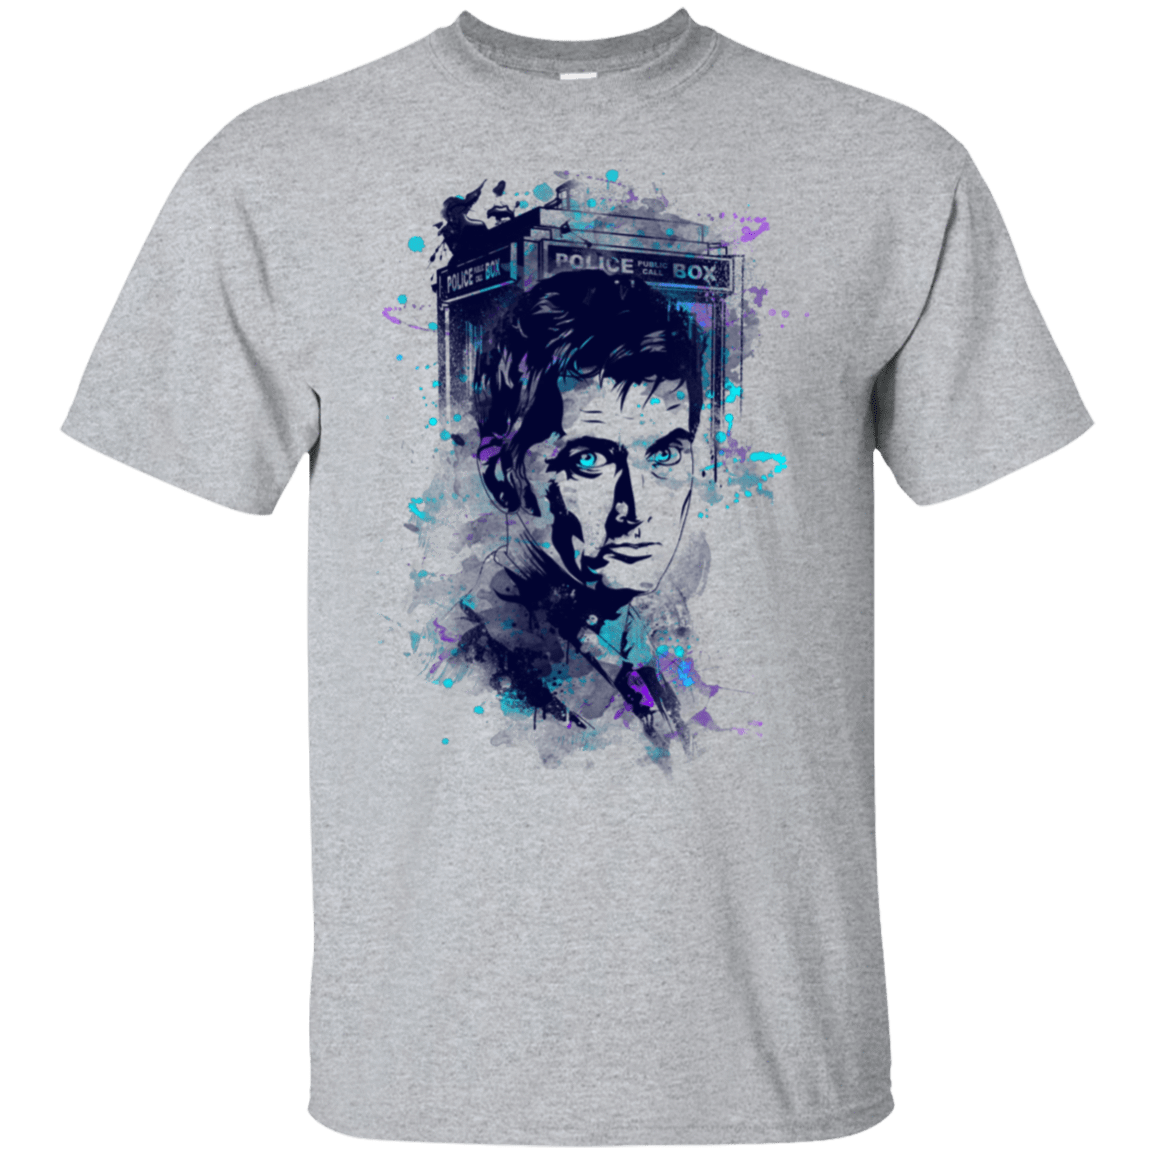 Water Colors Tenth Doctor T-Shirt